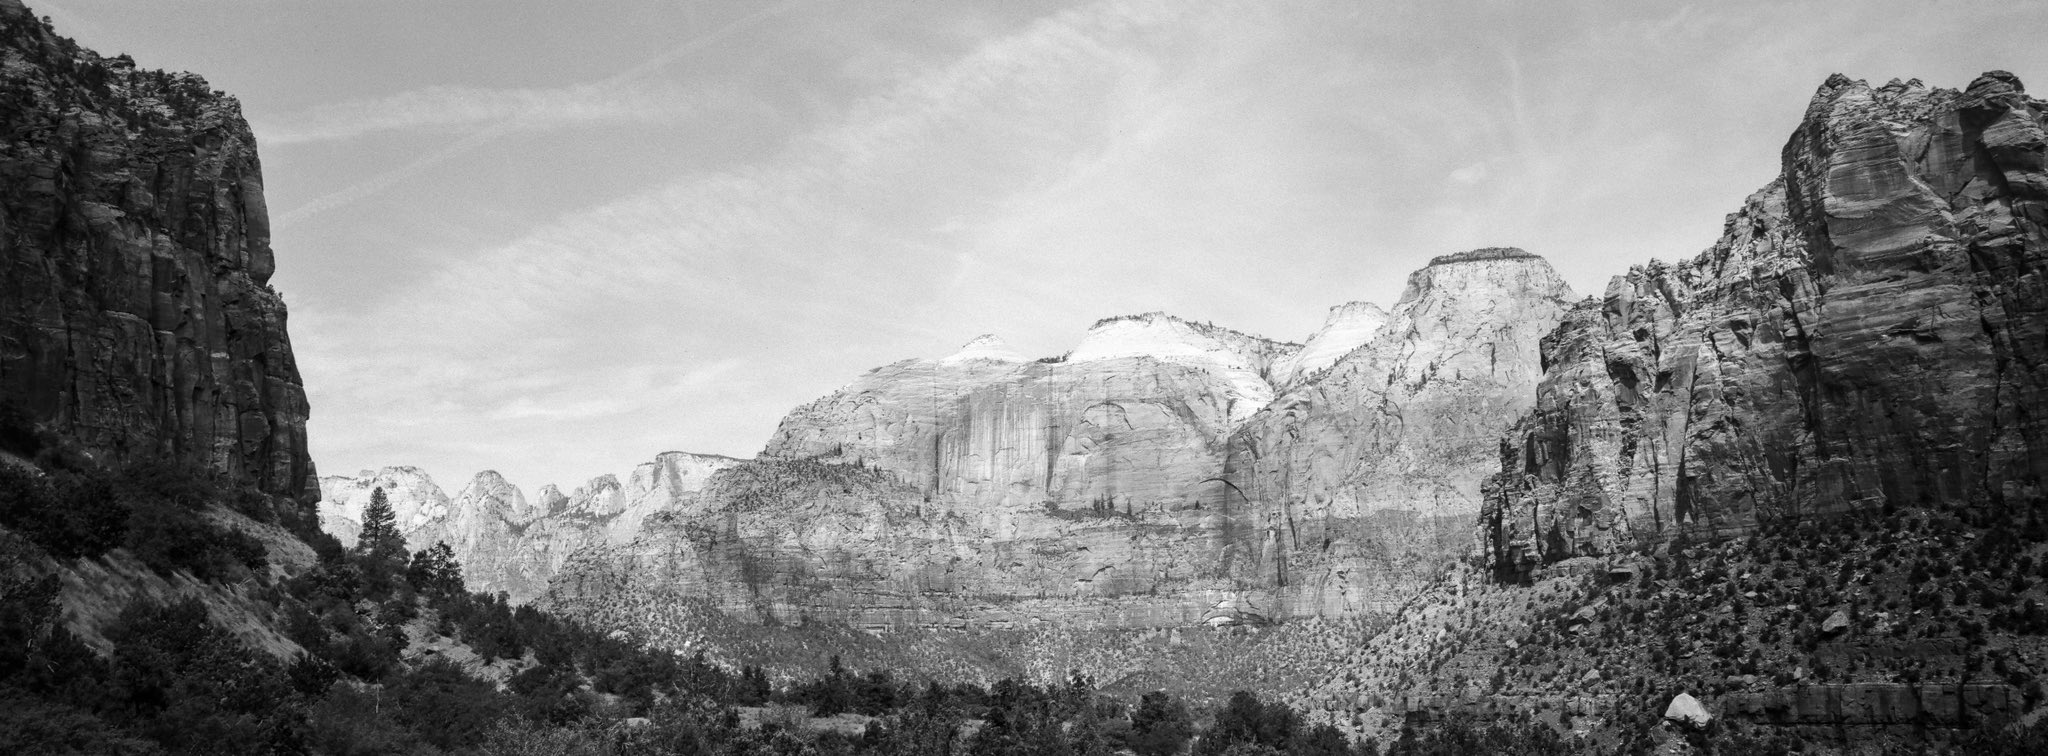 @danrubin Late in the game but this week's @ILFORDPhoto #fridayfavourites gave me an excuse to finally start digging through scans from a summer 2017 trip through the Southwestern United States — including this XPan shot from the amazing Zion National Park. #shotonpanf